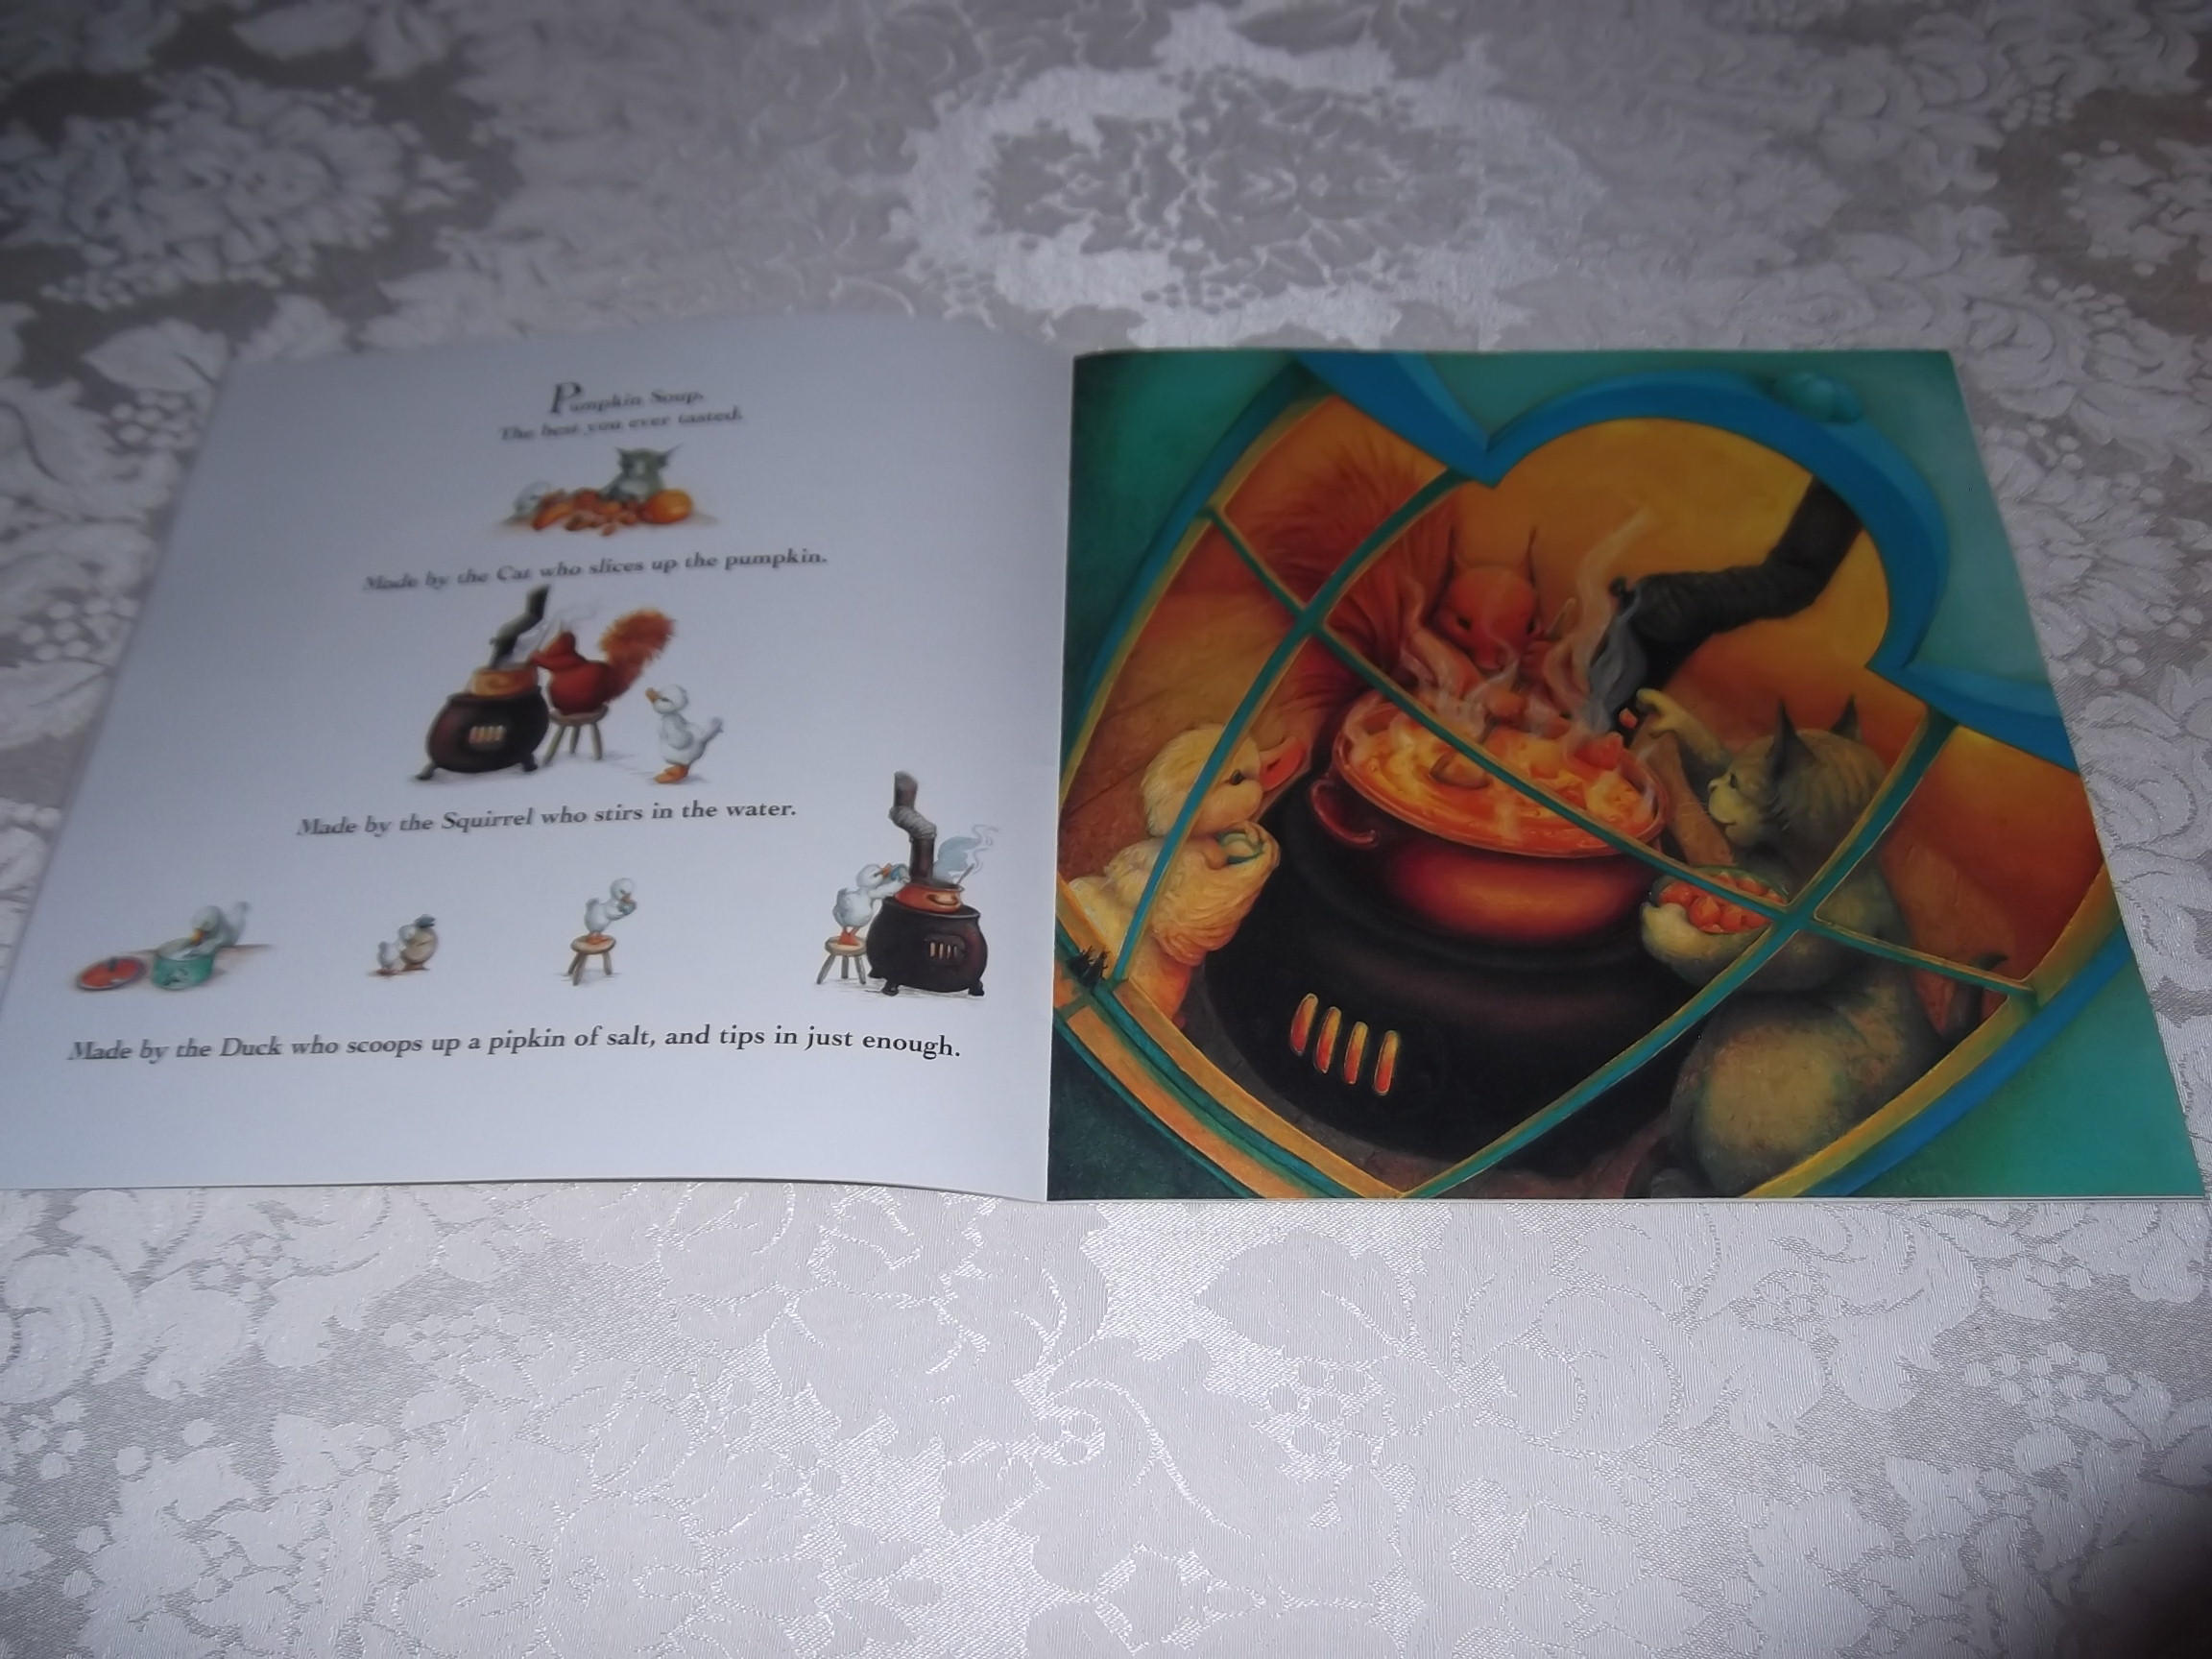 Image 1 of Pumpkin Soup Helen Cooper Brand New Softcover